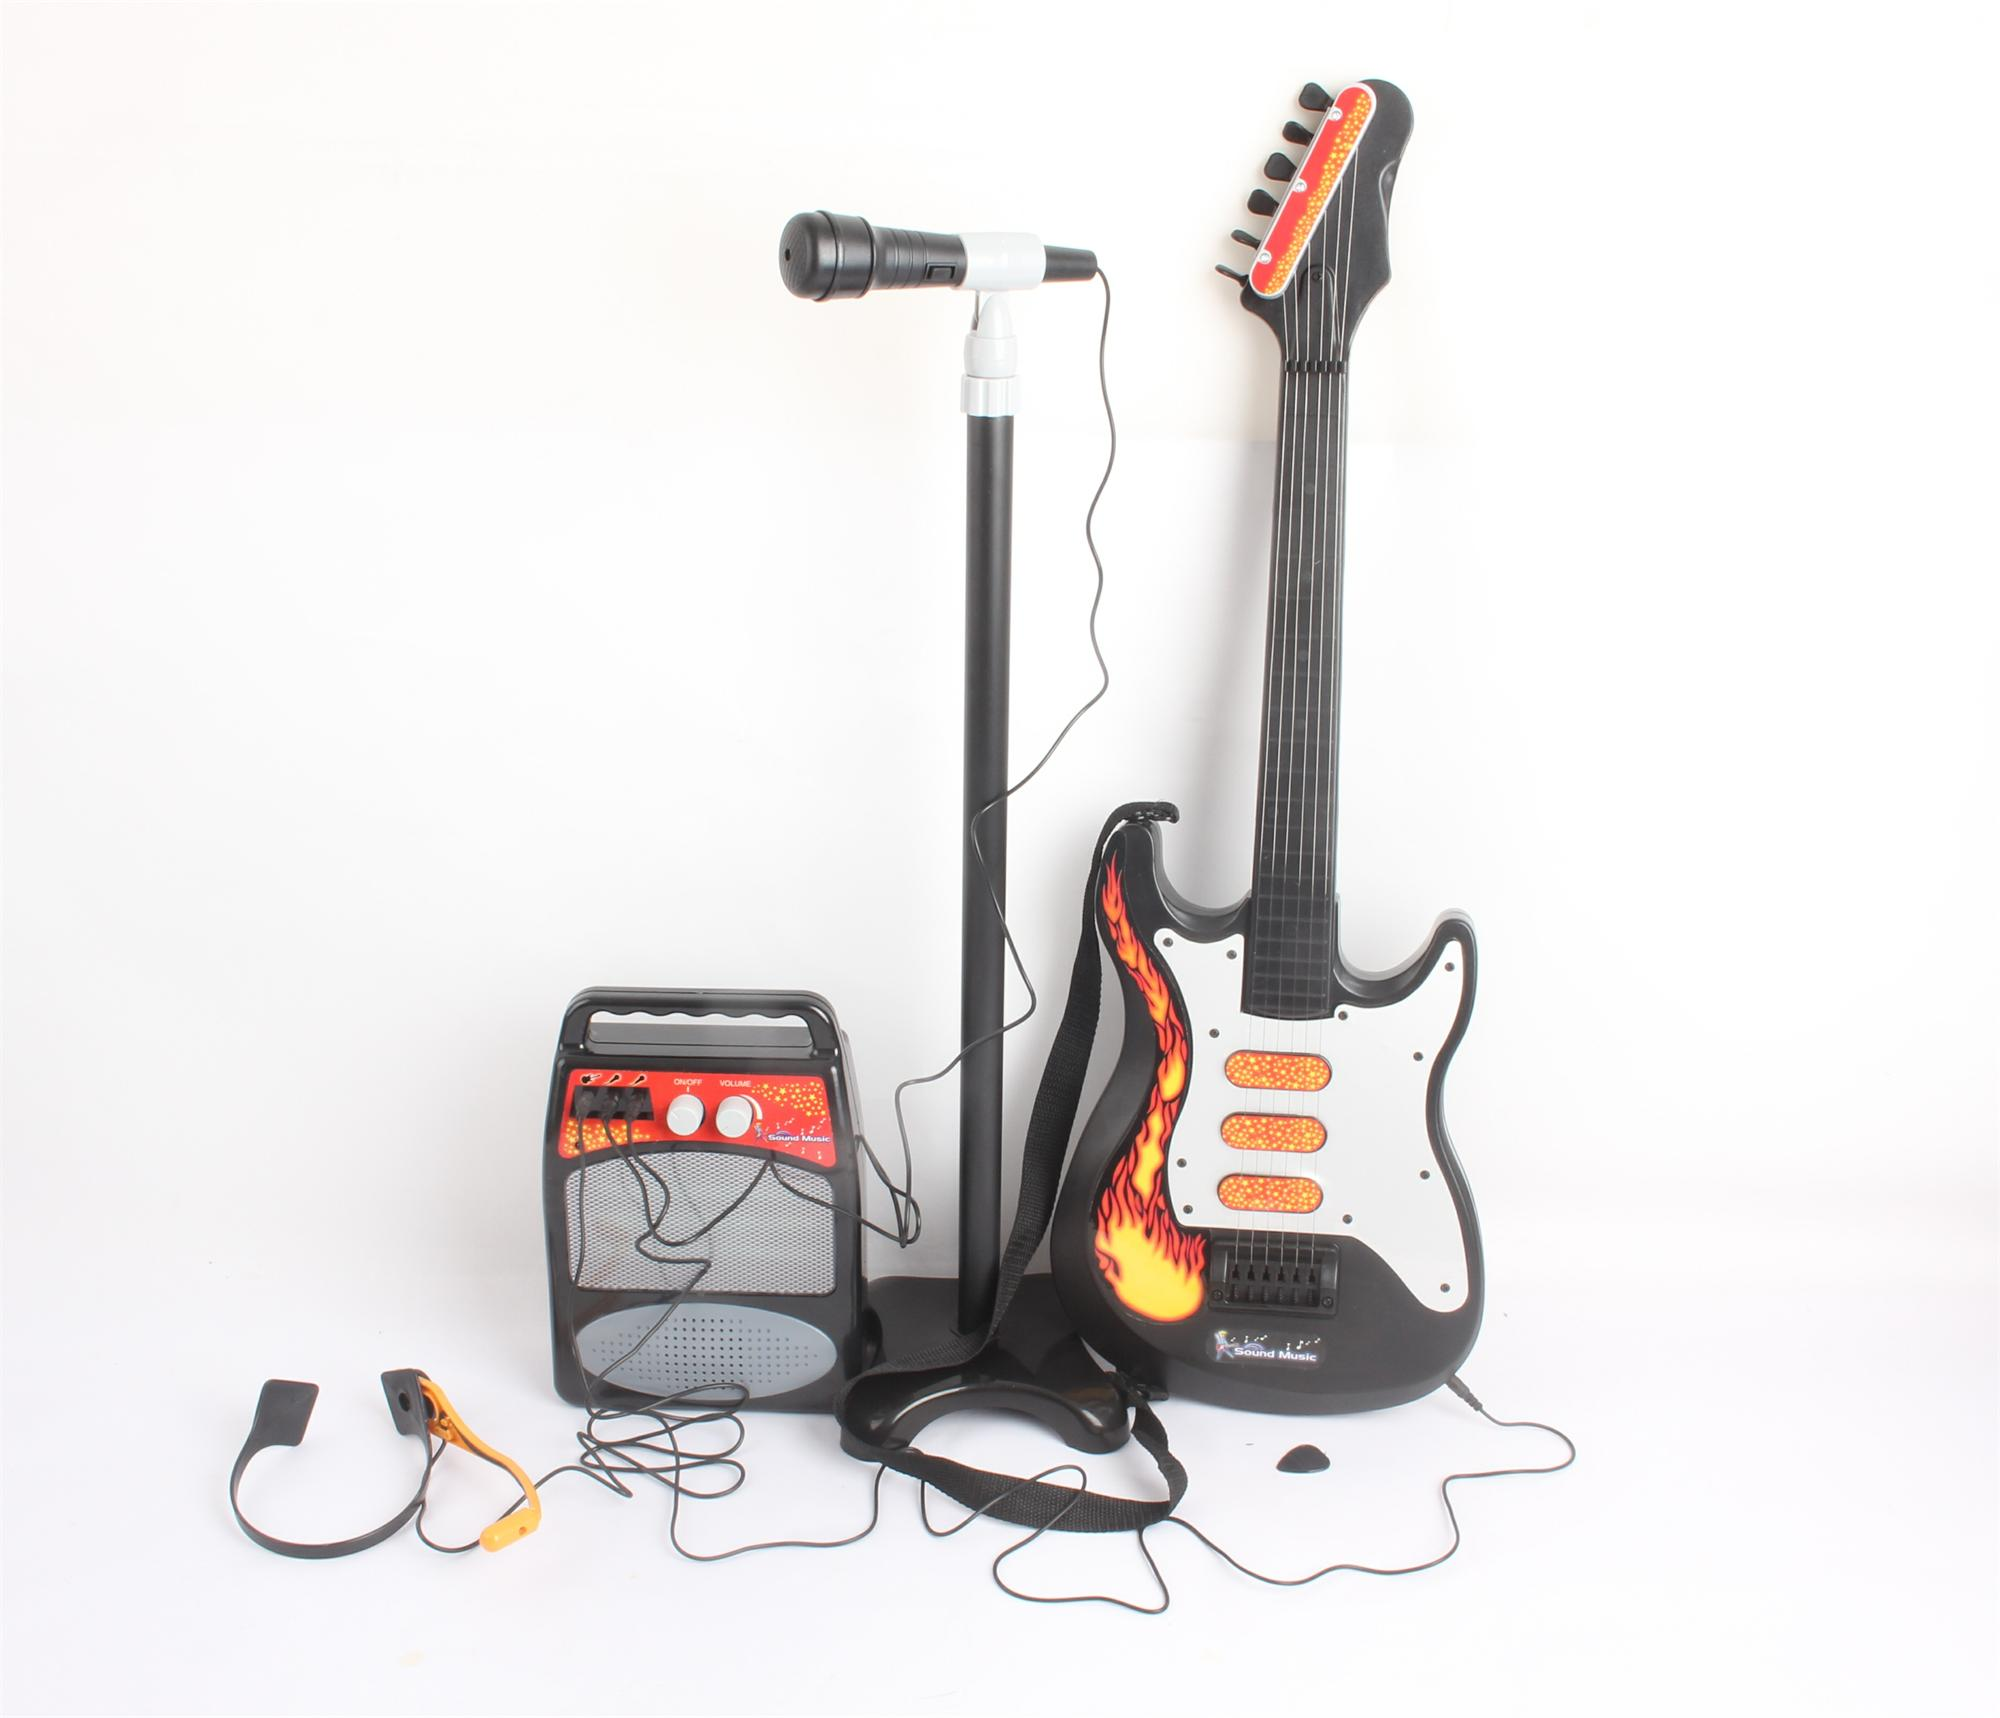 G4RCE Kids Children Toy Guitar Microphone Amplifier Set Karaoke